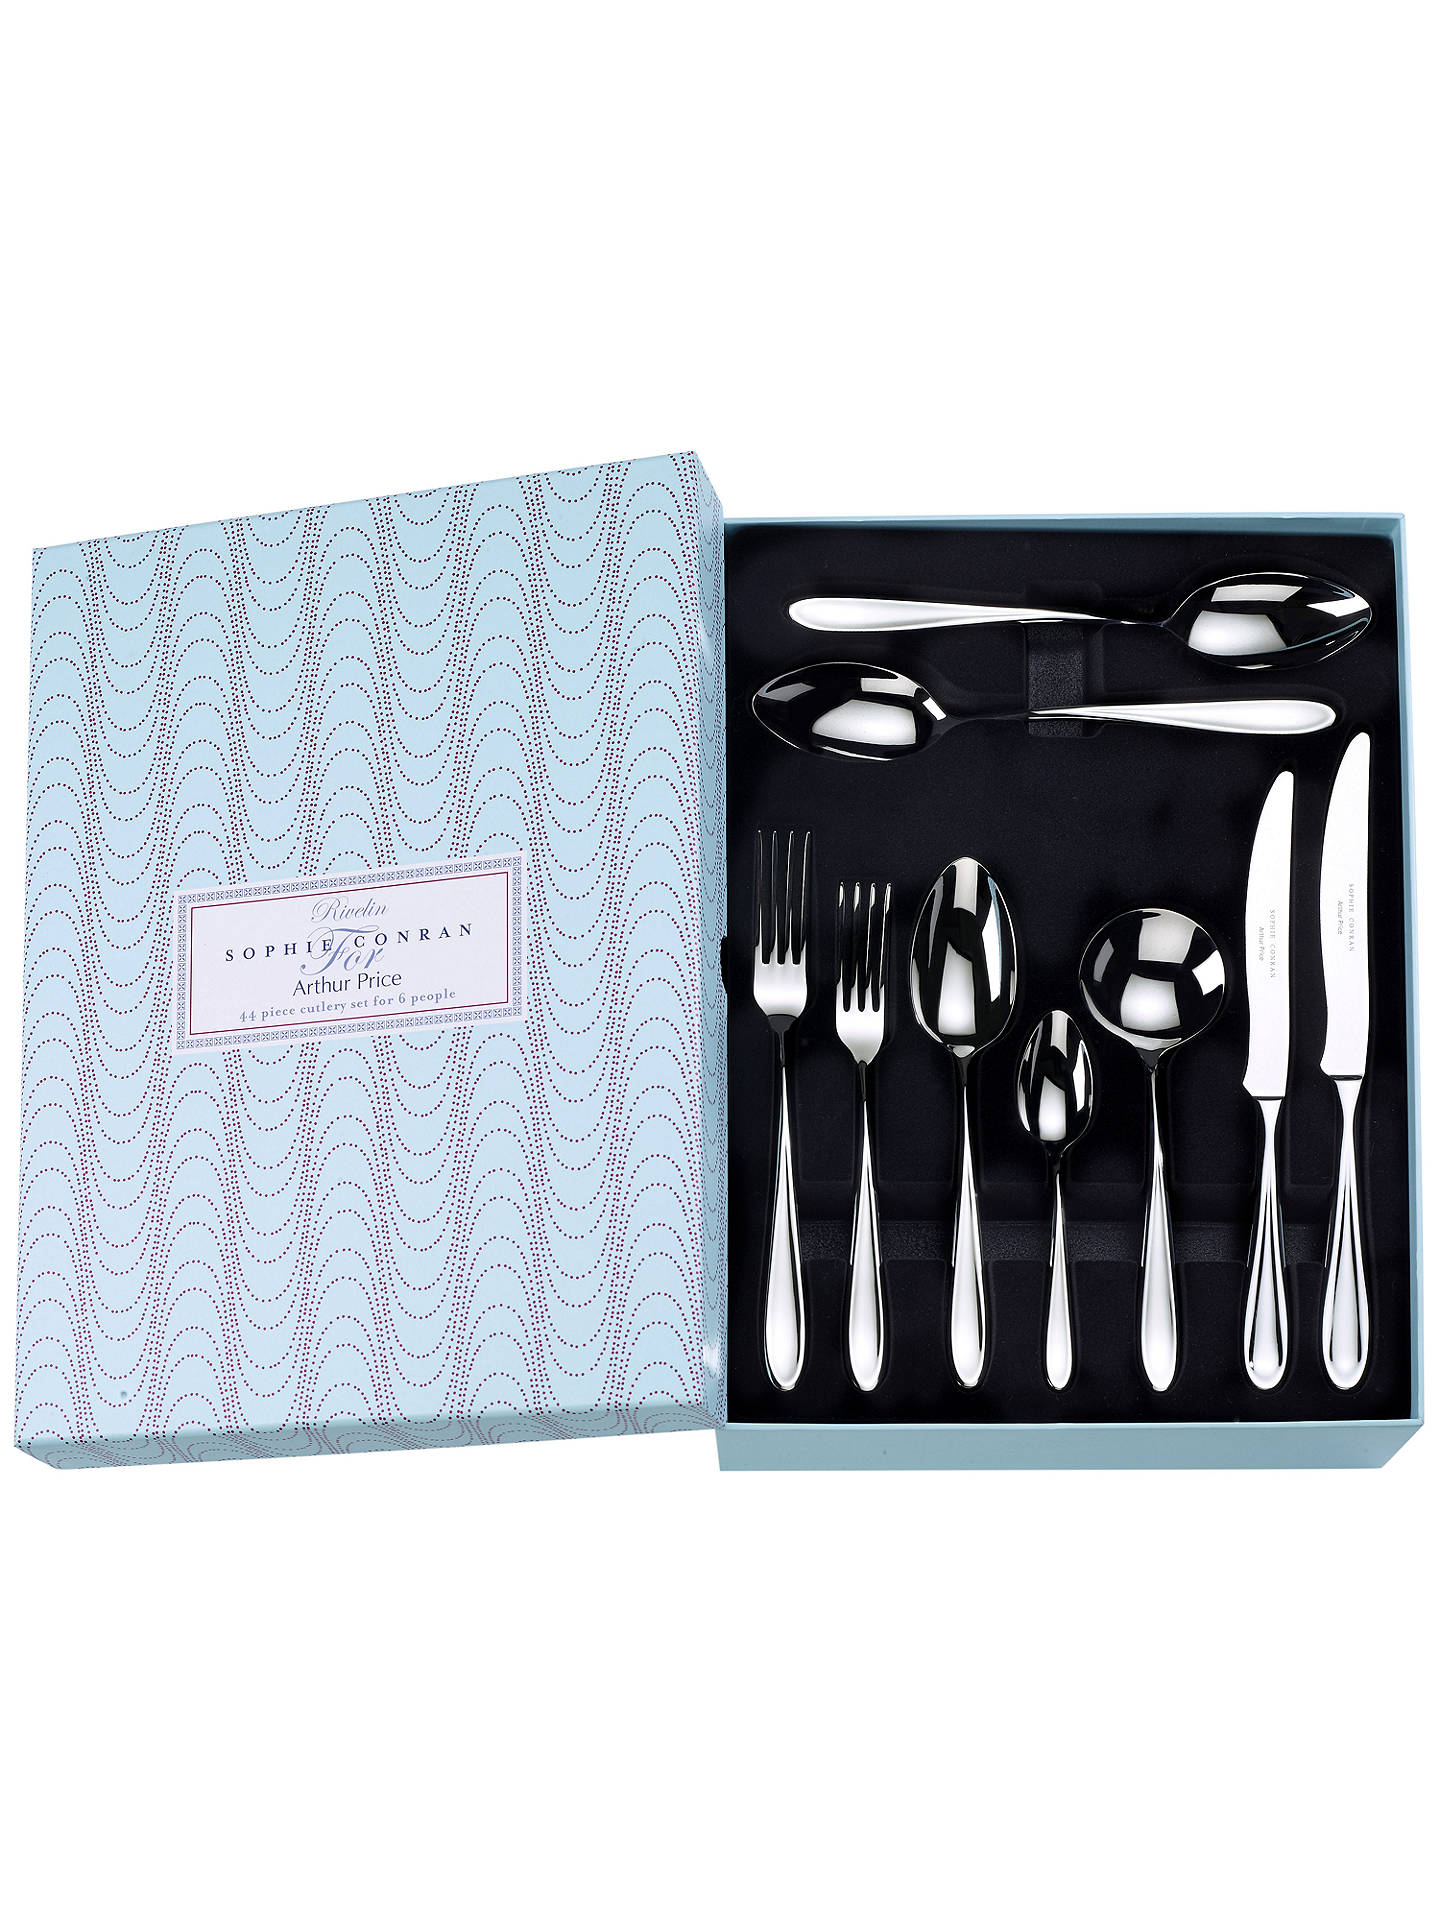 BuySophie Conran for Arthur Price Rivelin Cutlery Set, 44 Piece Online at johnlewis.com